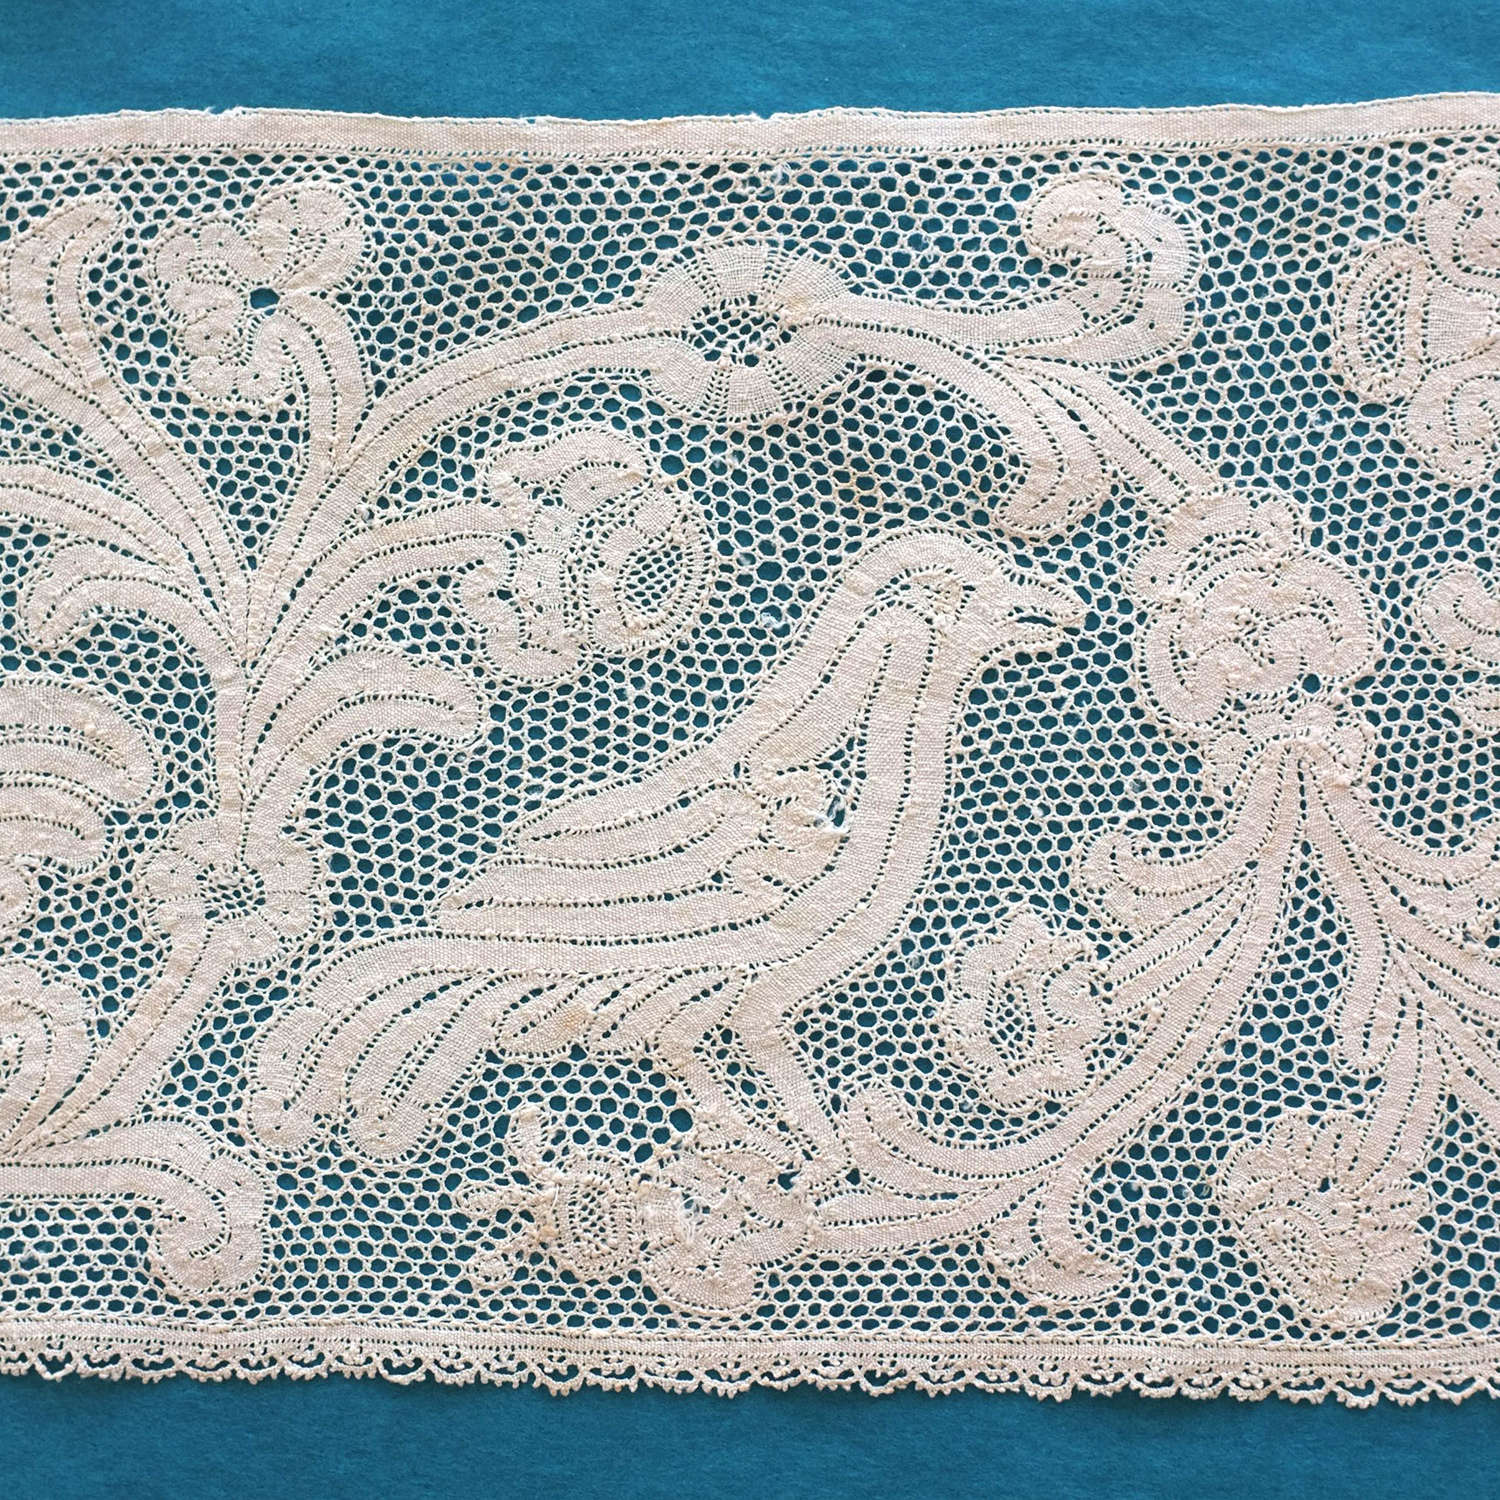 Antique Fragment Late 17th Century Milanese Bobbin Lace With Birds